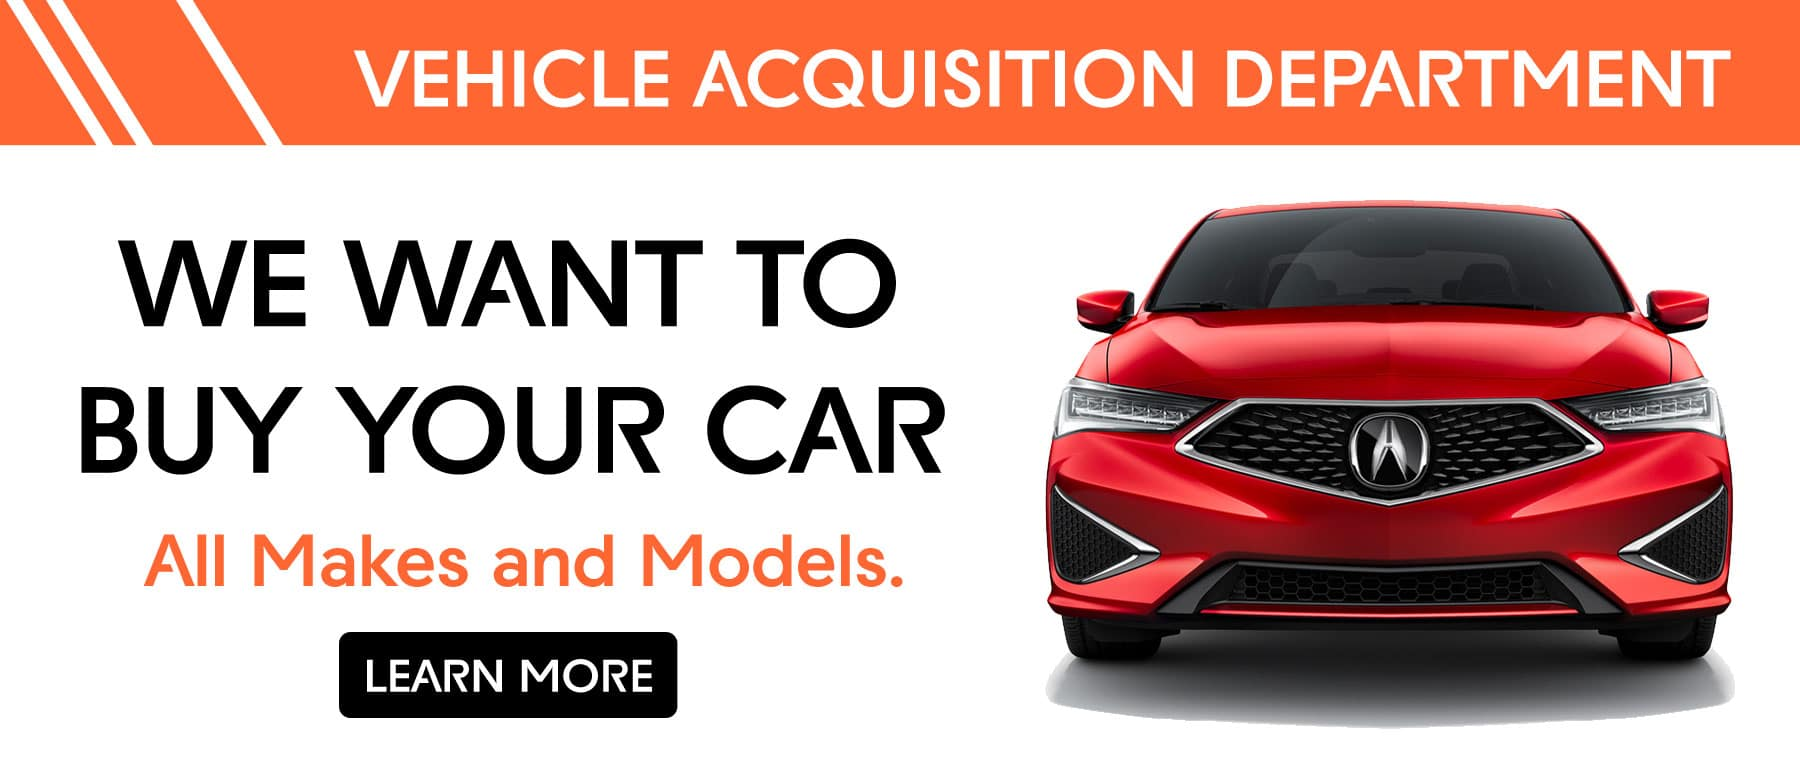 We-want-to-buy-your-car-ver